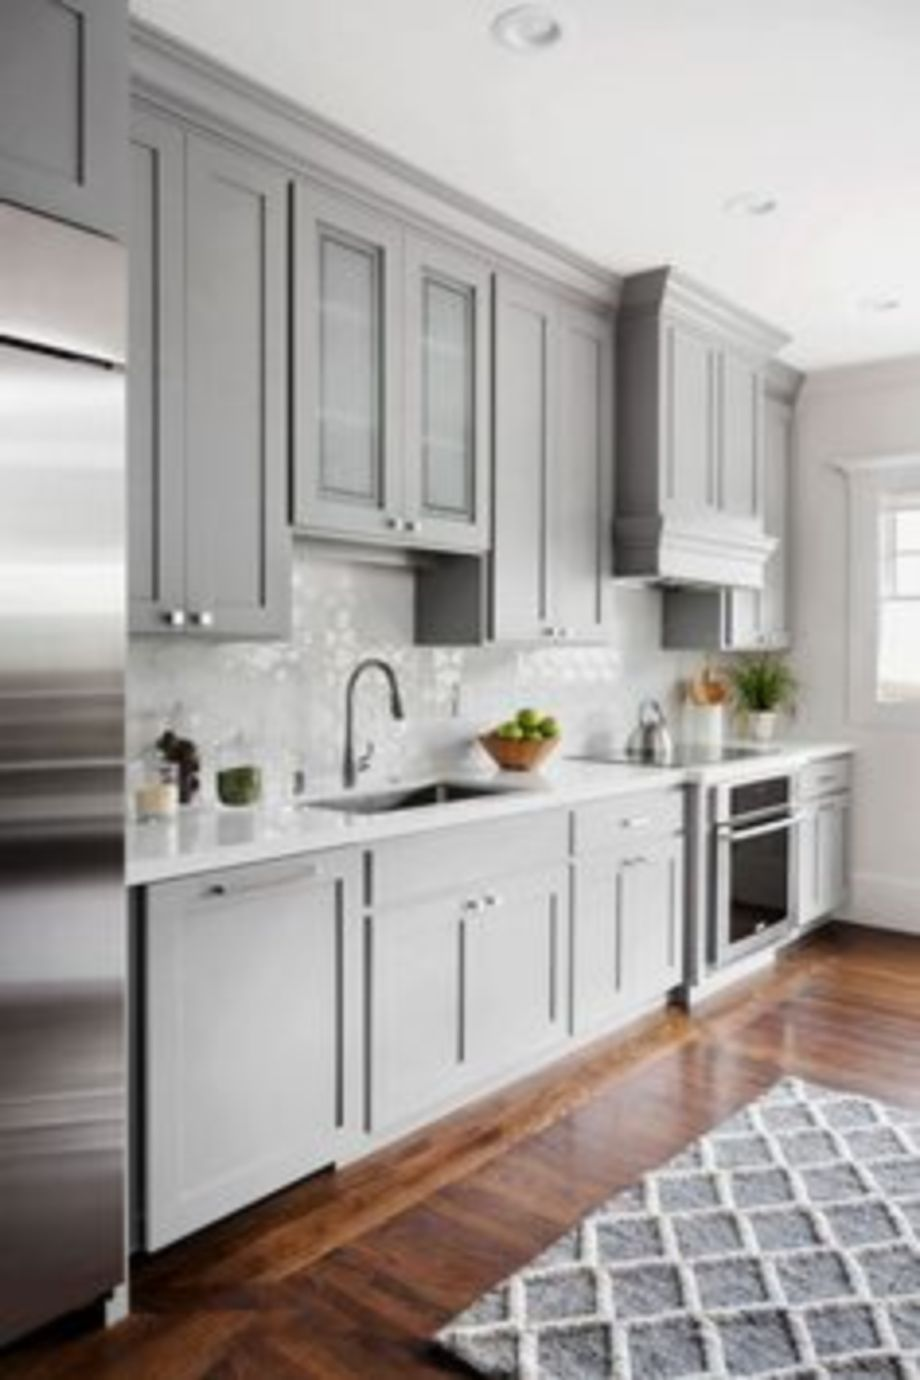 Ideas for painting kitchen cabinets   Cool Grey Kitchen Cabinet Ideas  Grey kitchen cabinets Gray